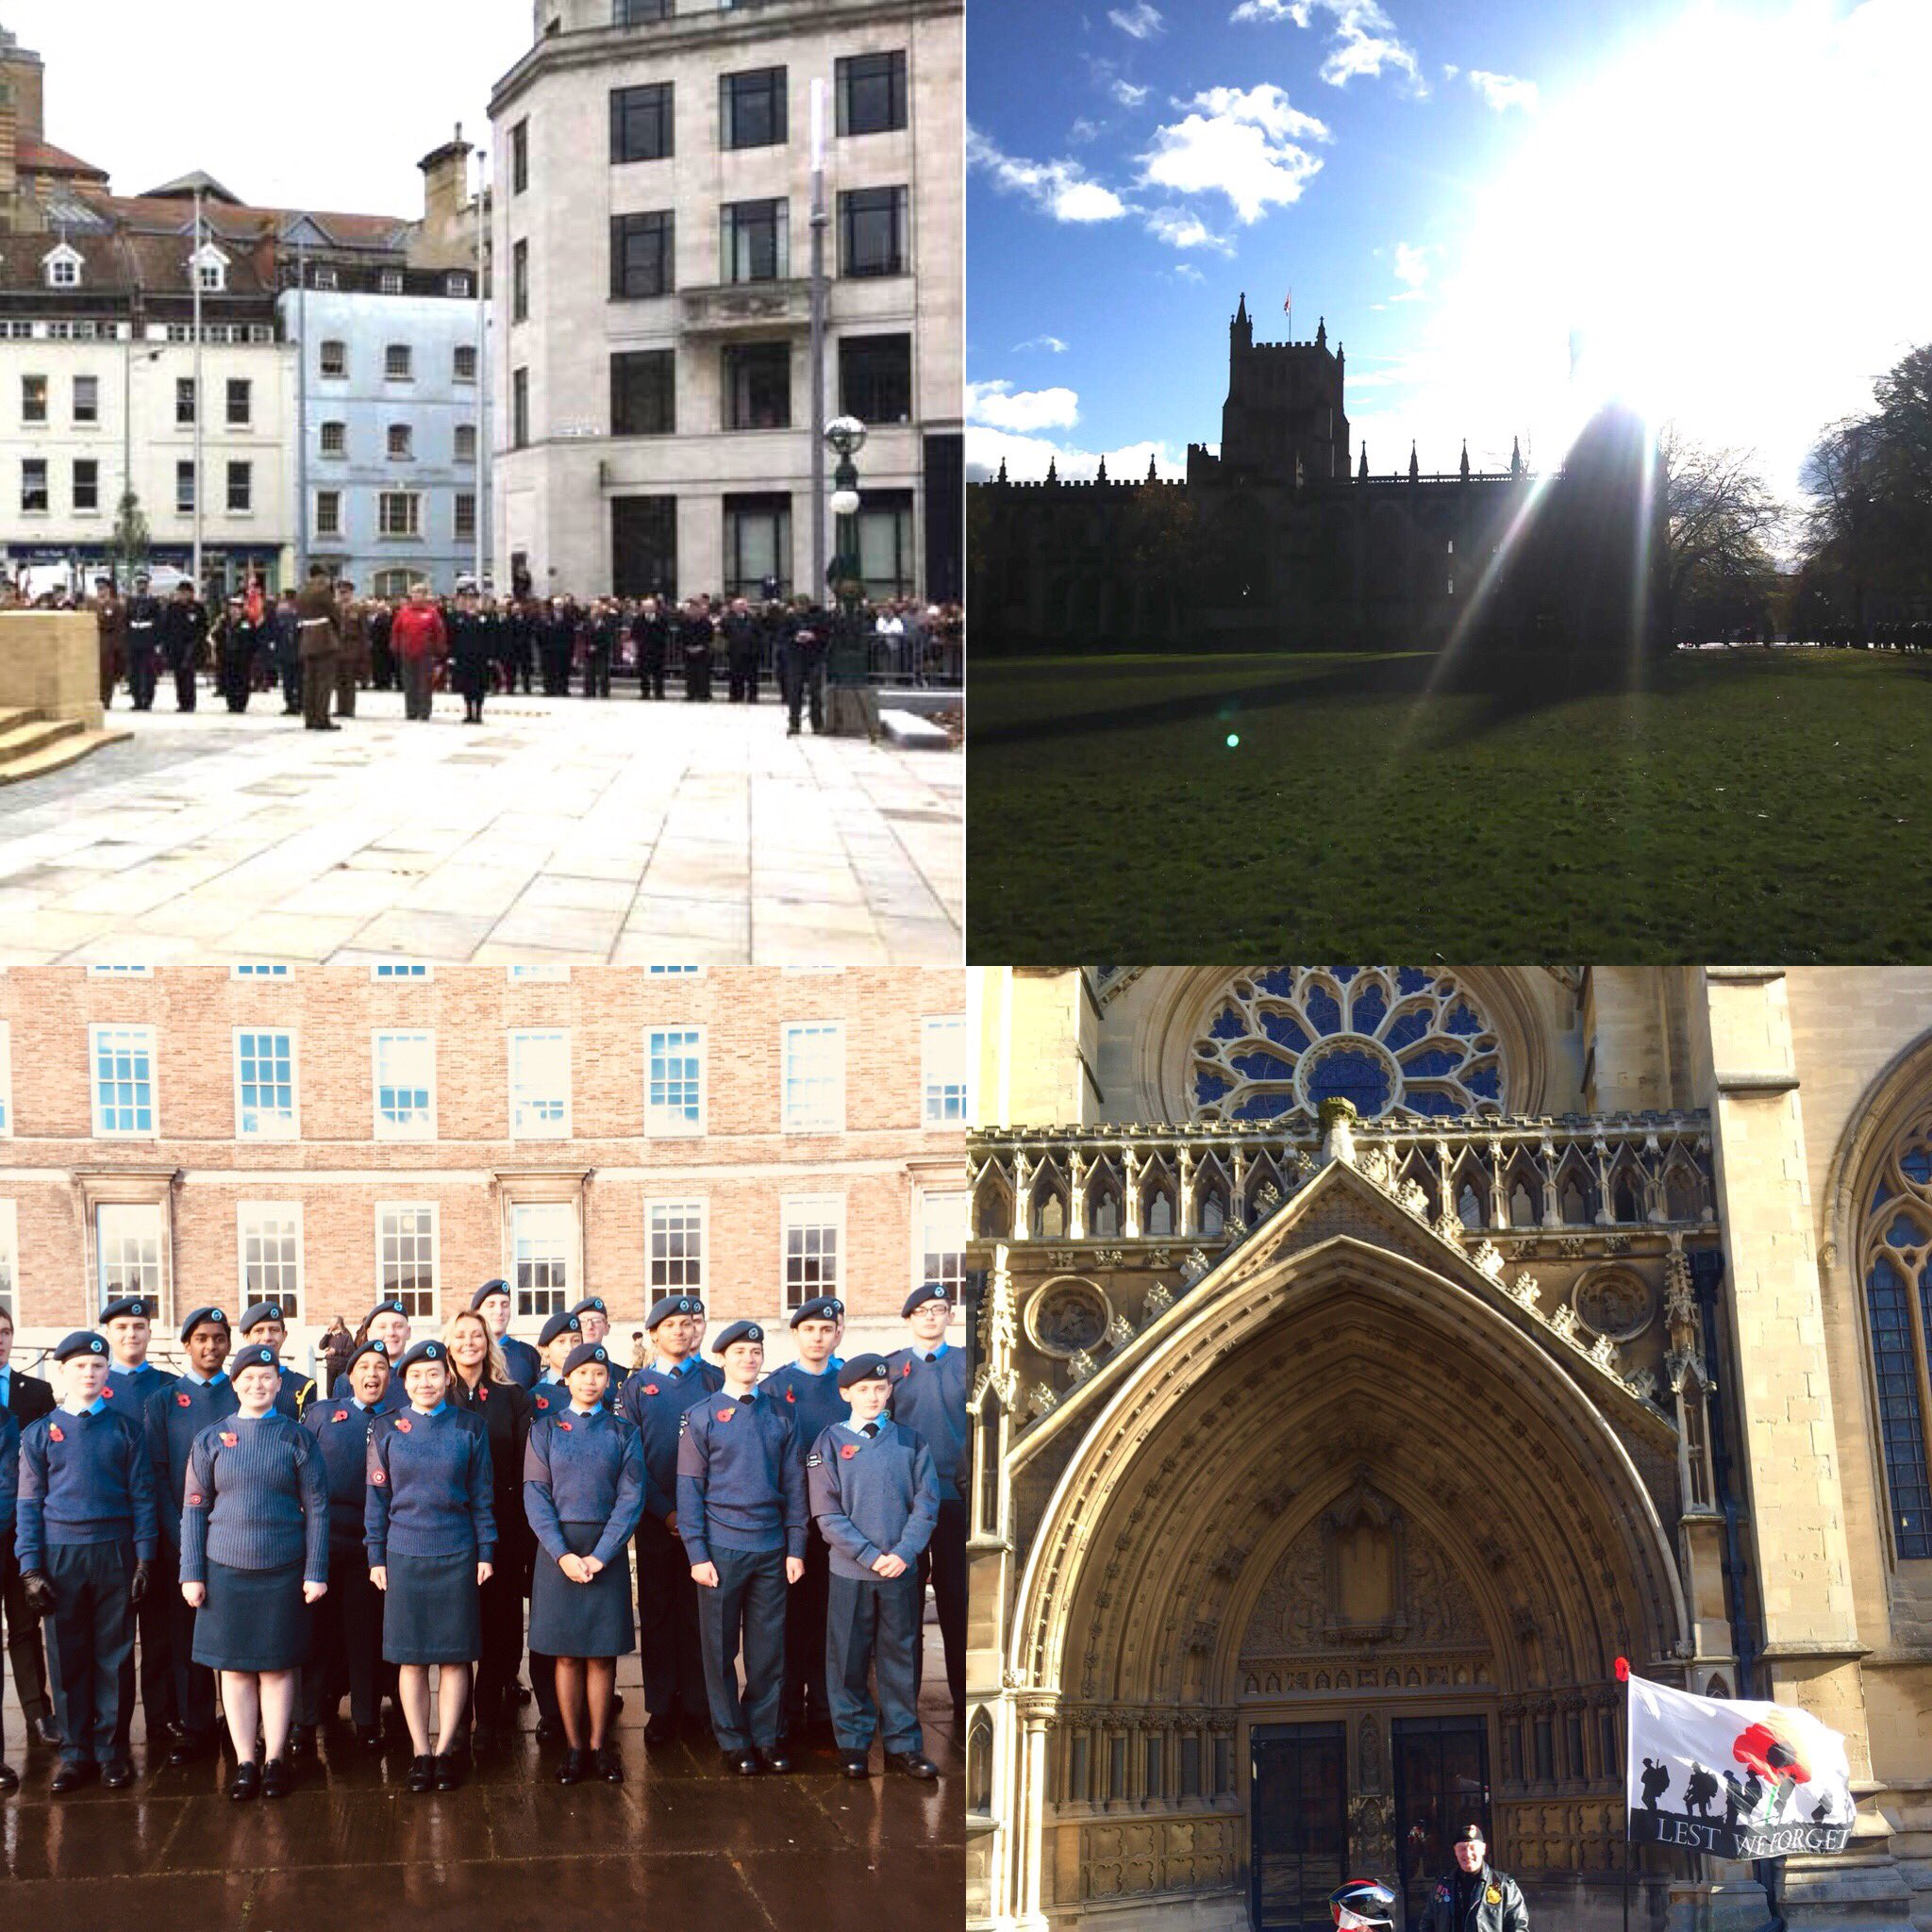 #Bristol #Cenotaph #Remembrance @aircadets #BristolCathedral....an honour to be present #LestWeForget ❤️ https://t.co/KnQdmn8OlW